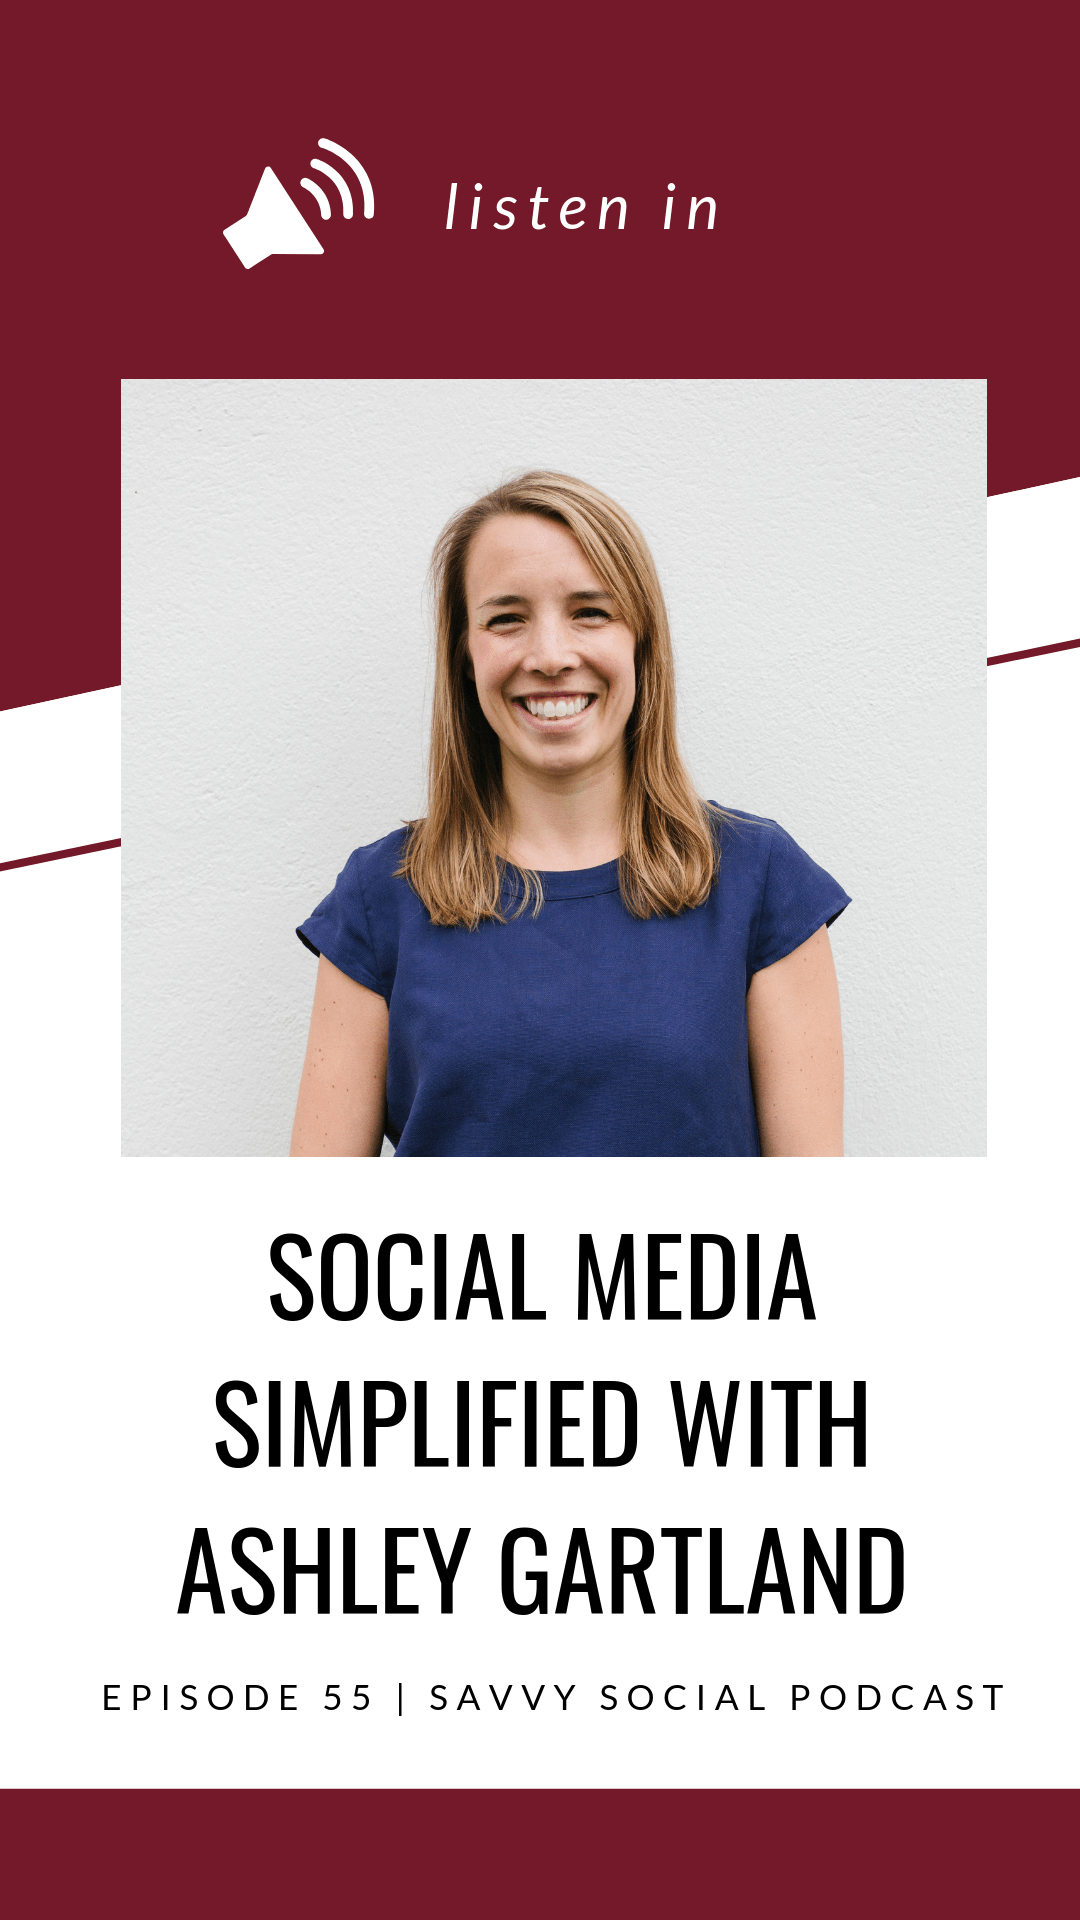 As an entrepreneur, it's common to feel like you have to do everything yourself and that's simply NOT TRUE! It's so important to remember to avoid the comparison trap and to keep things simple. Putting systems in place for your social media by figuring out what gets you results and what you can release will help you streamline and simplify your life!